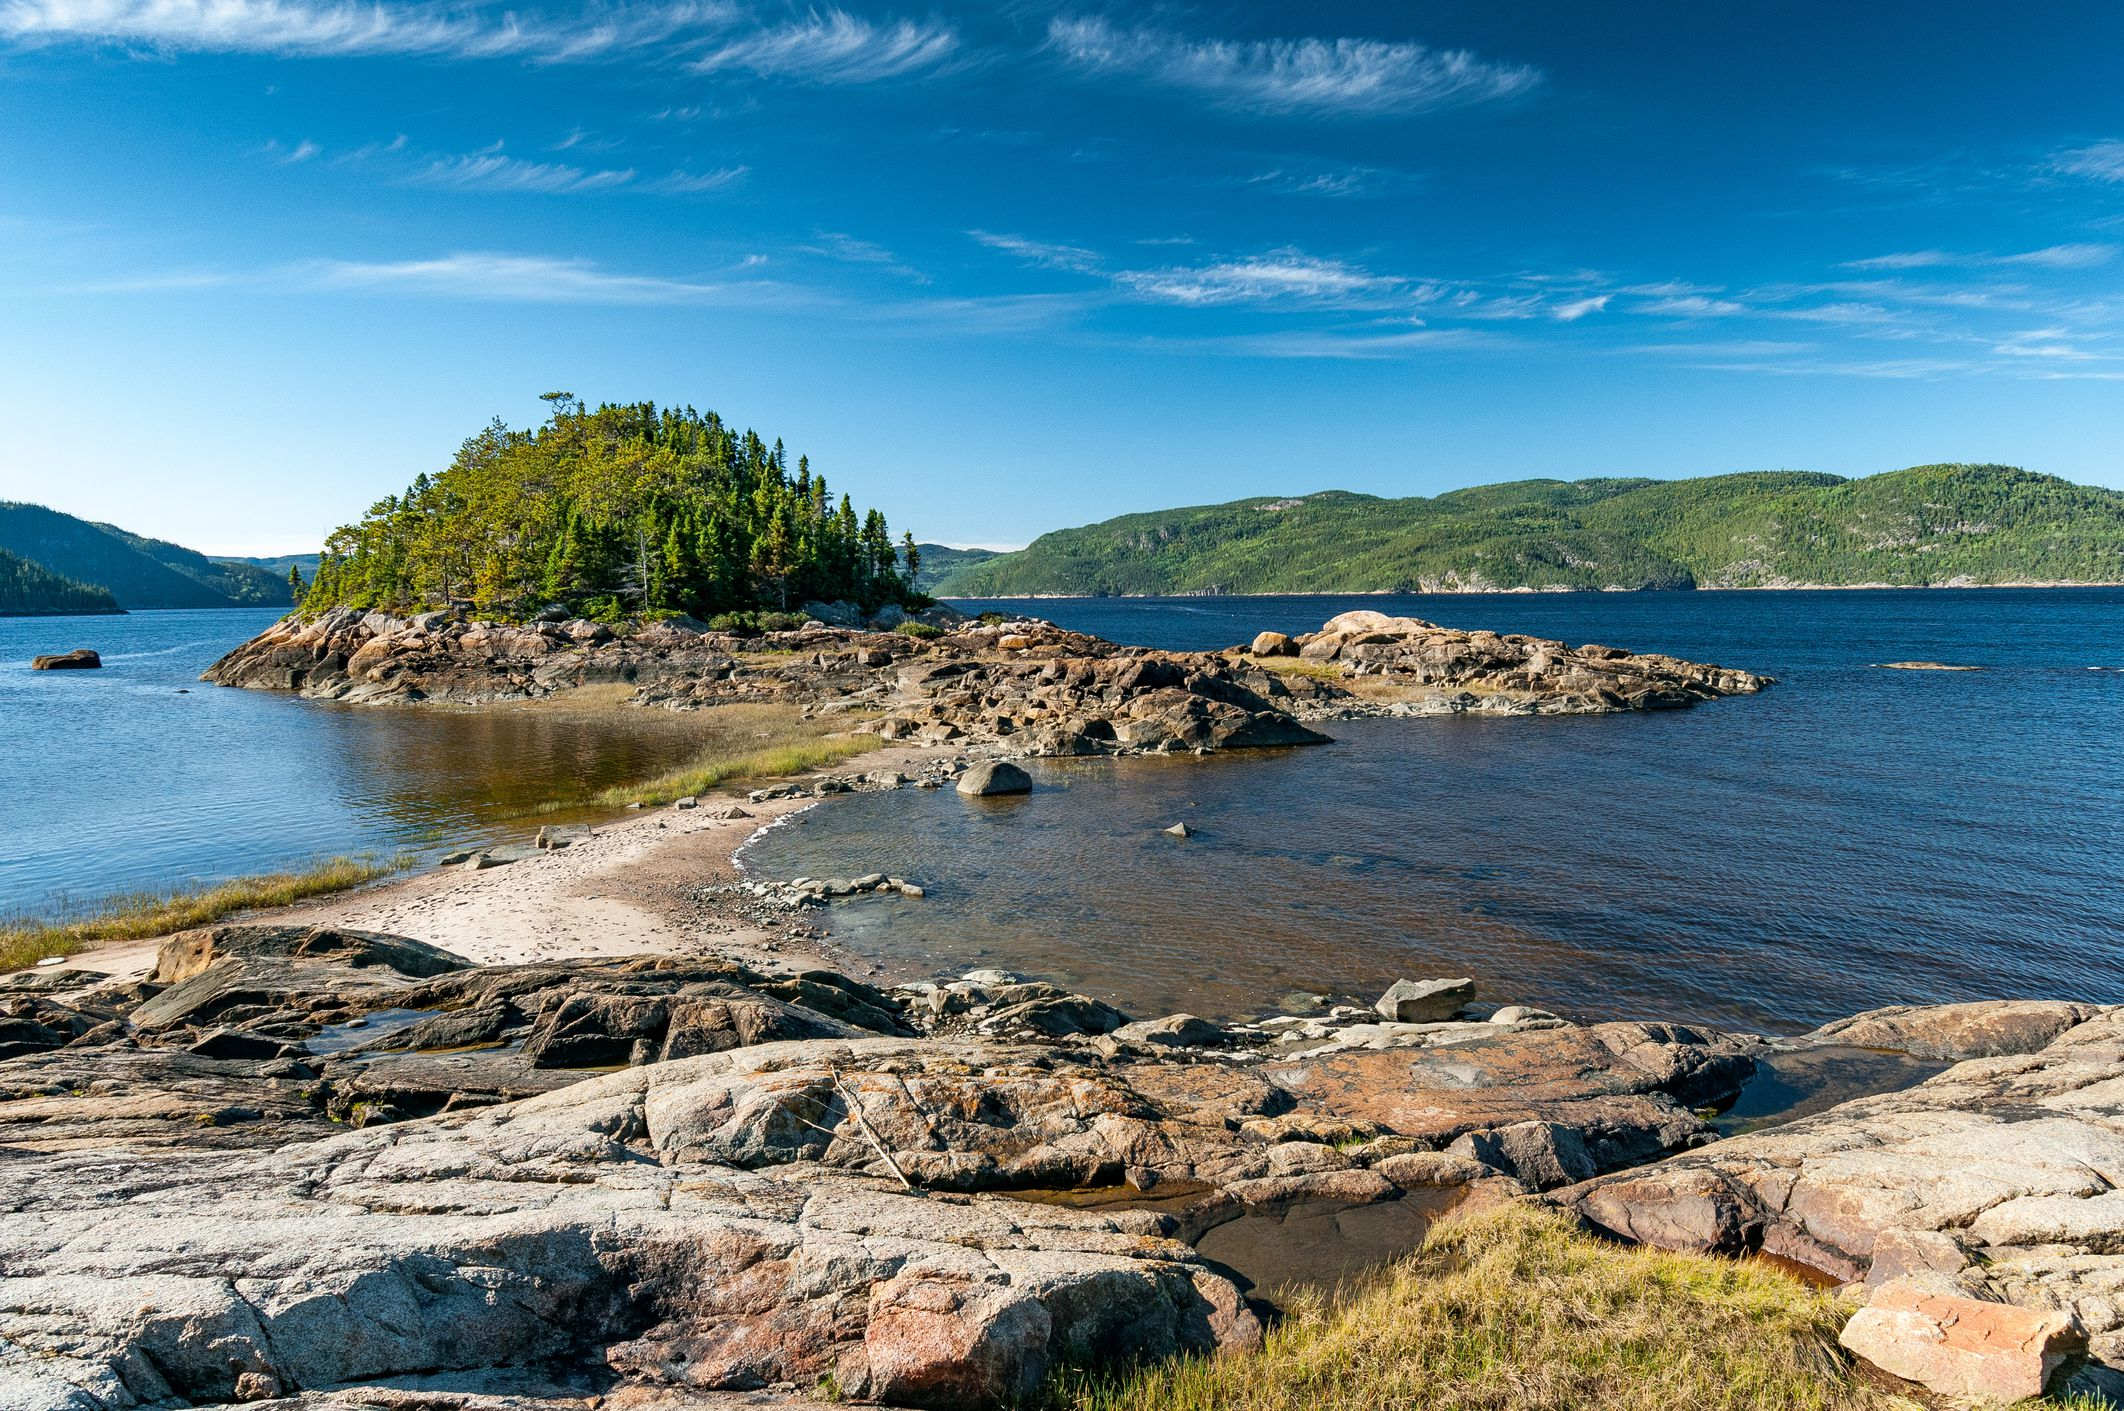 Shore of the Saguenay Fjord